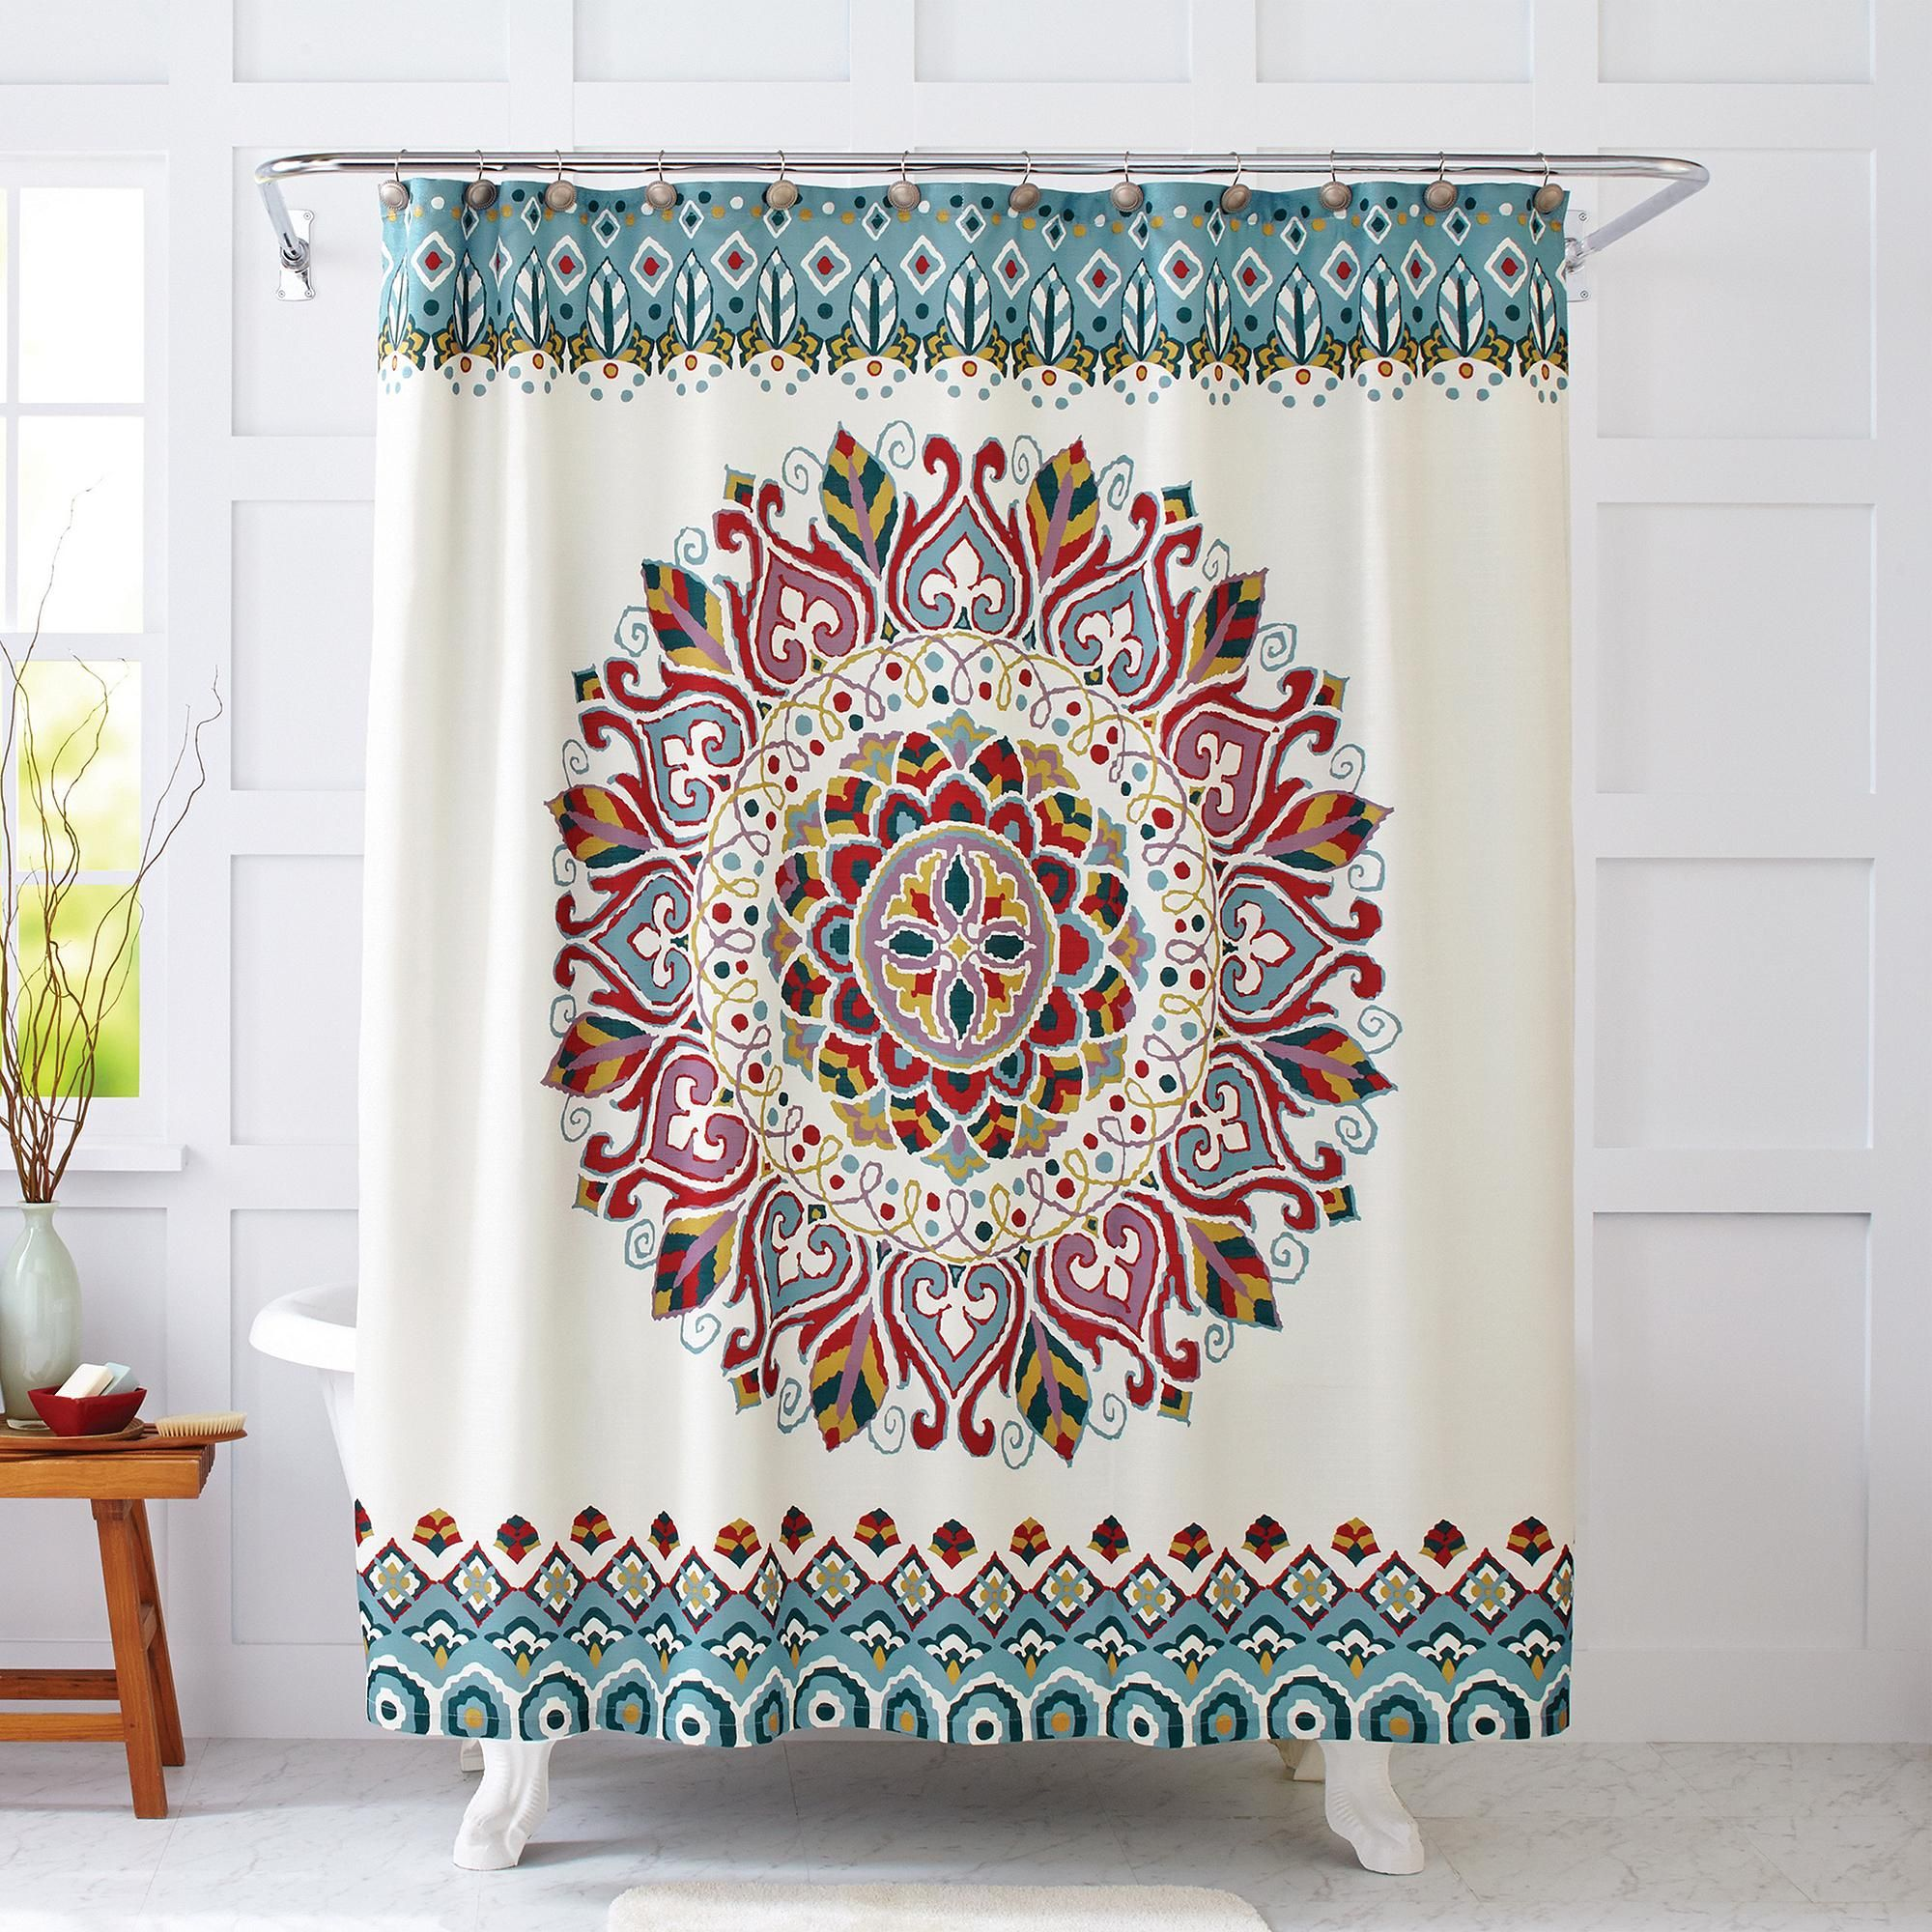 Better Homes And Gardens Medallion Fabric Shower Curtain Walmart